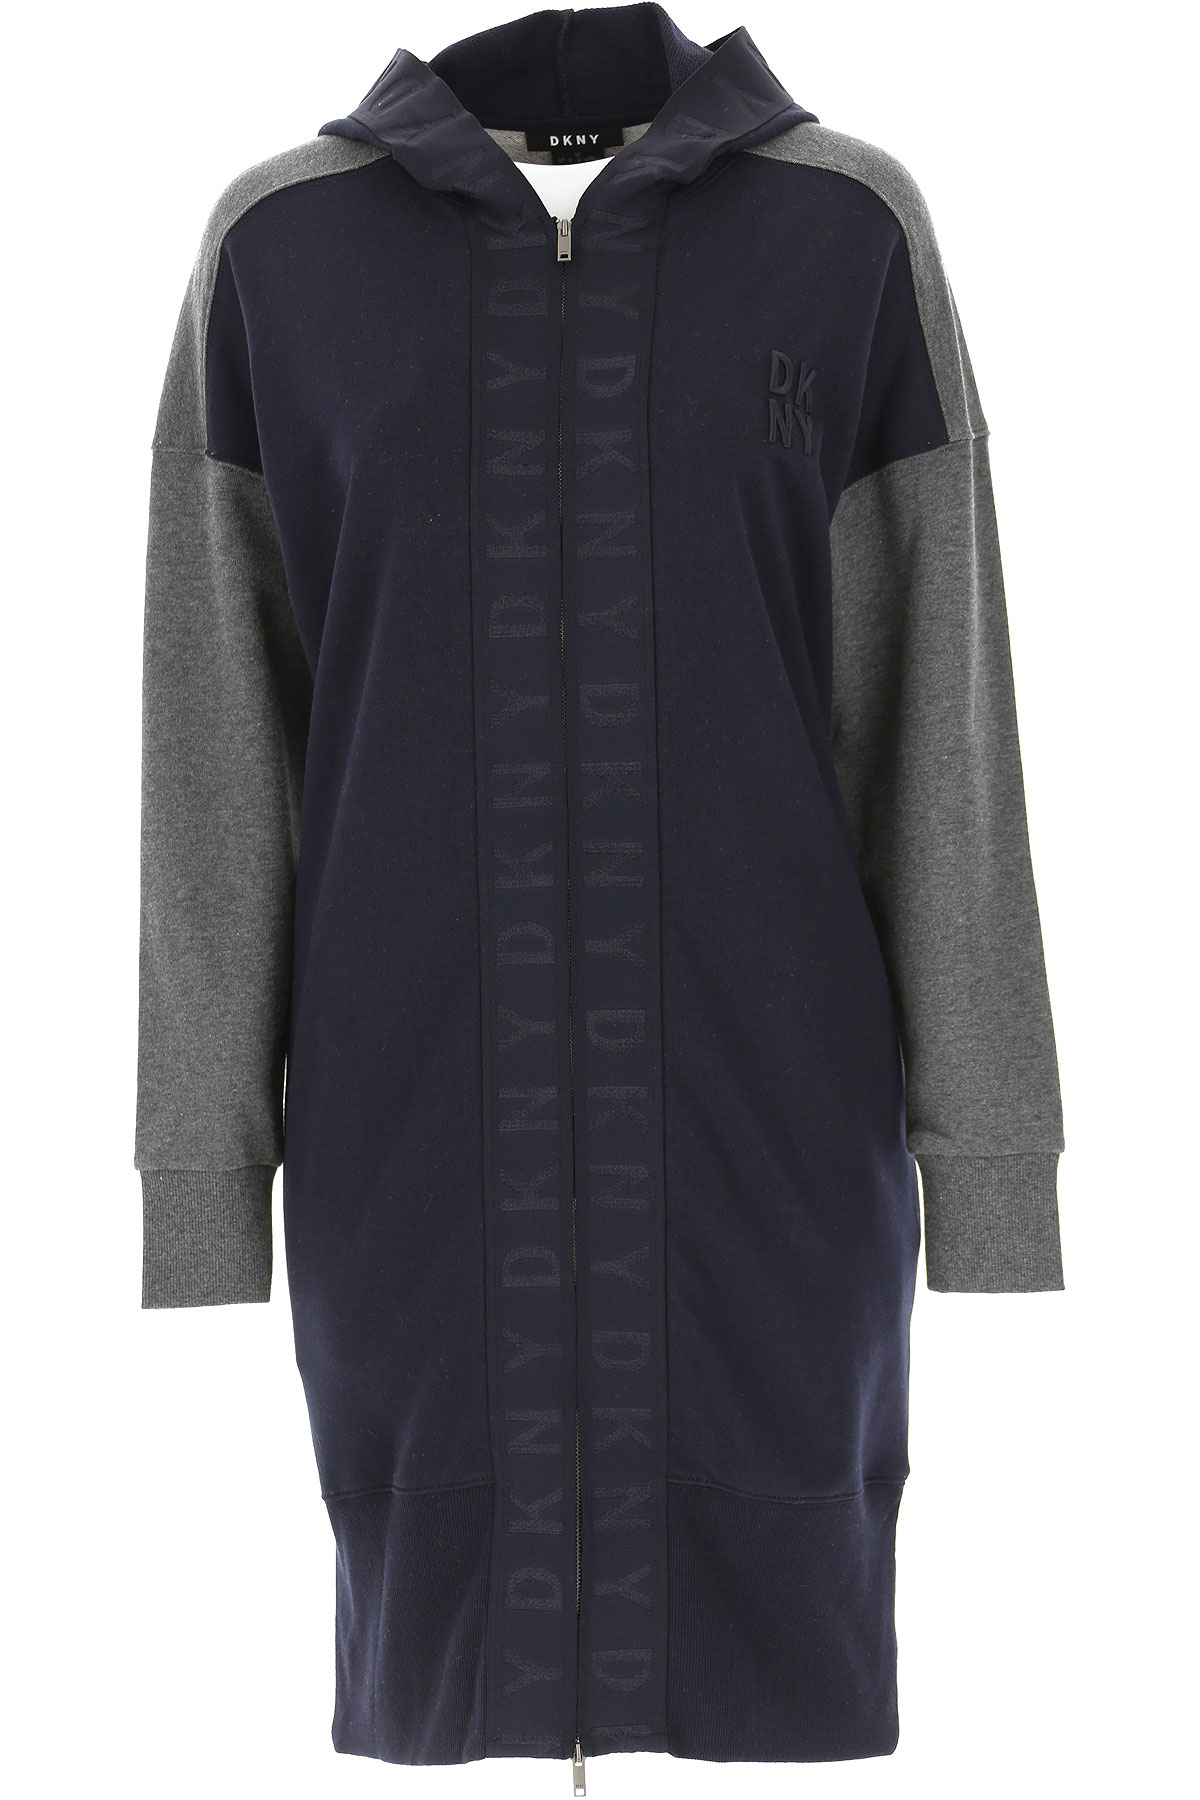 DKNY Dress for Women, Evening Cocktail Party On Sale, Midnight Blue, Cotton, 2019, 4 6 8